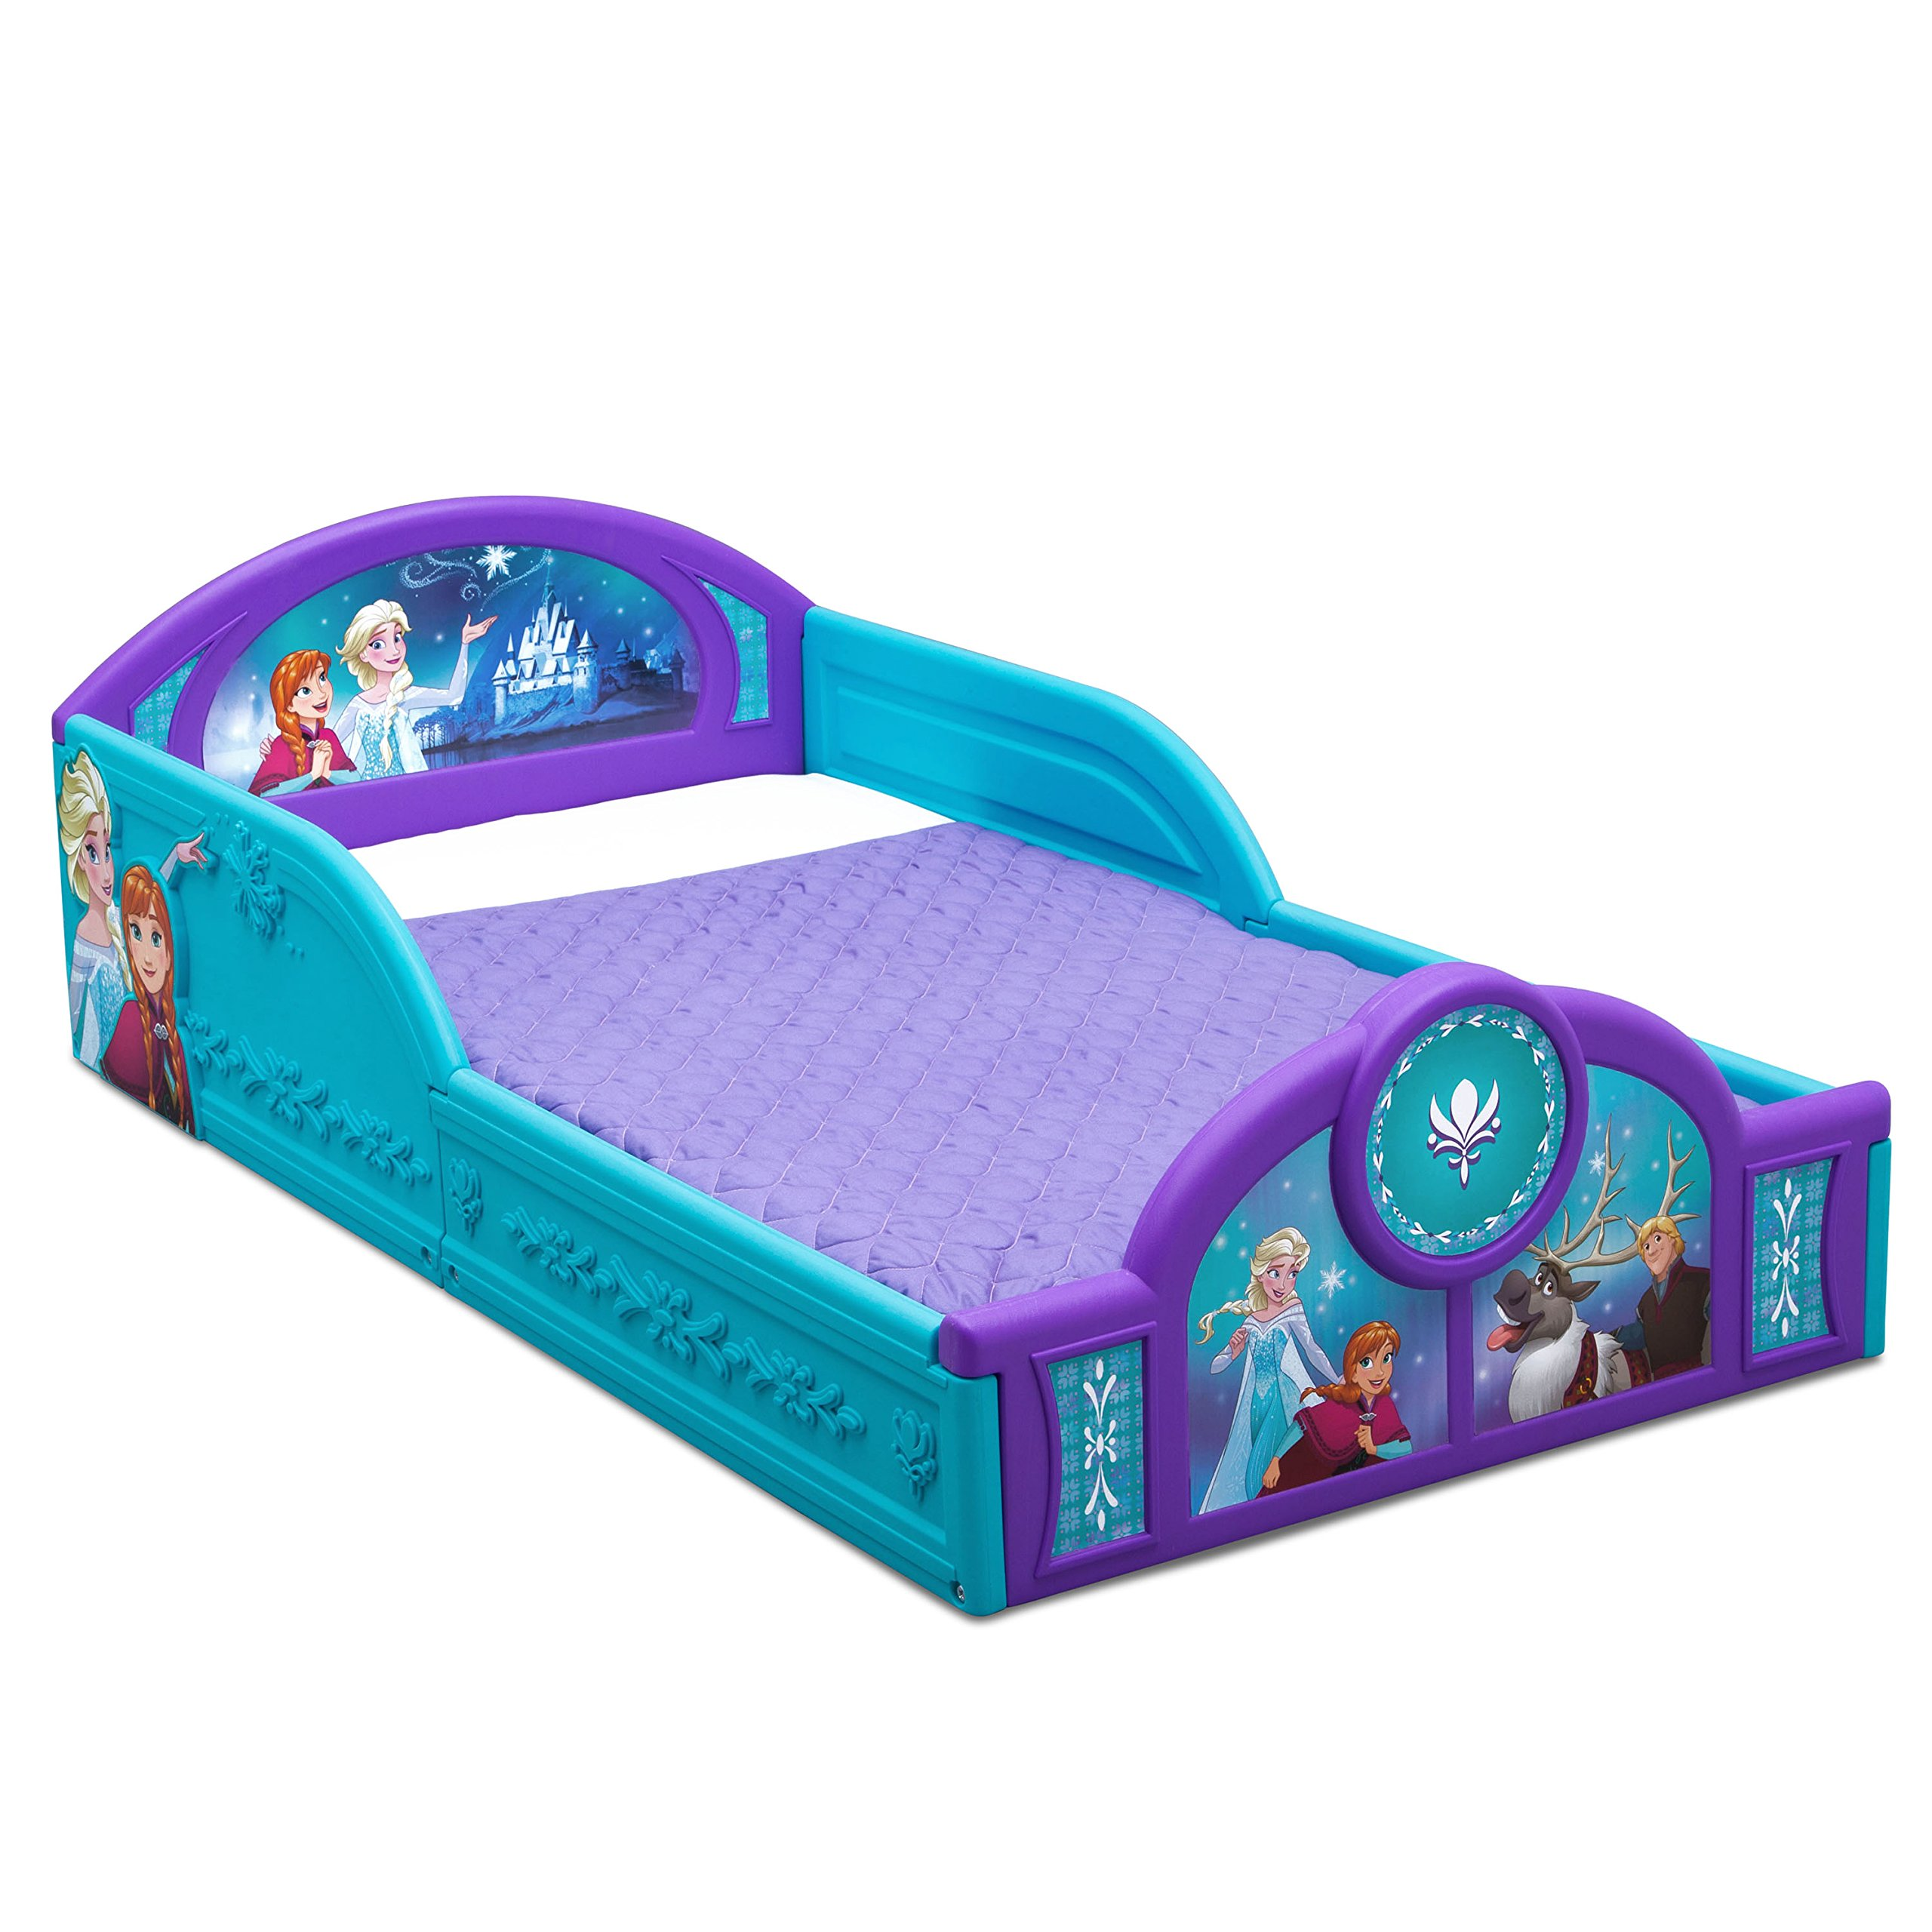 Delta Children Deluxe Disney Frozen Toddler Bed with attached guardrails